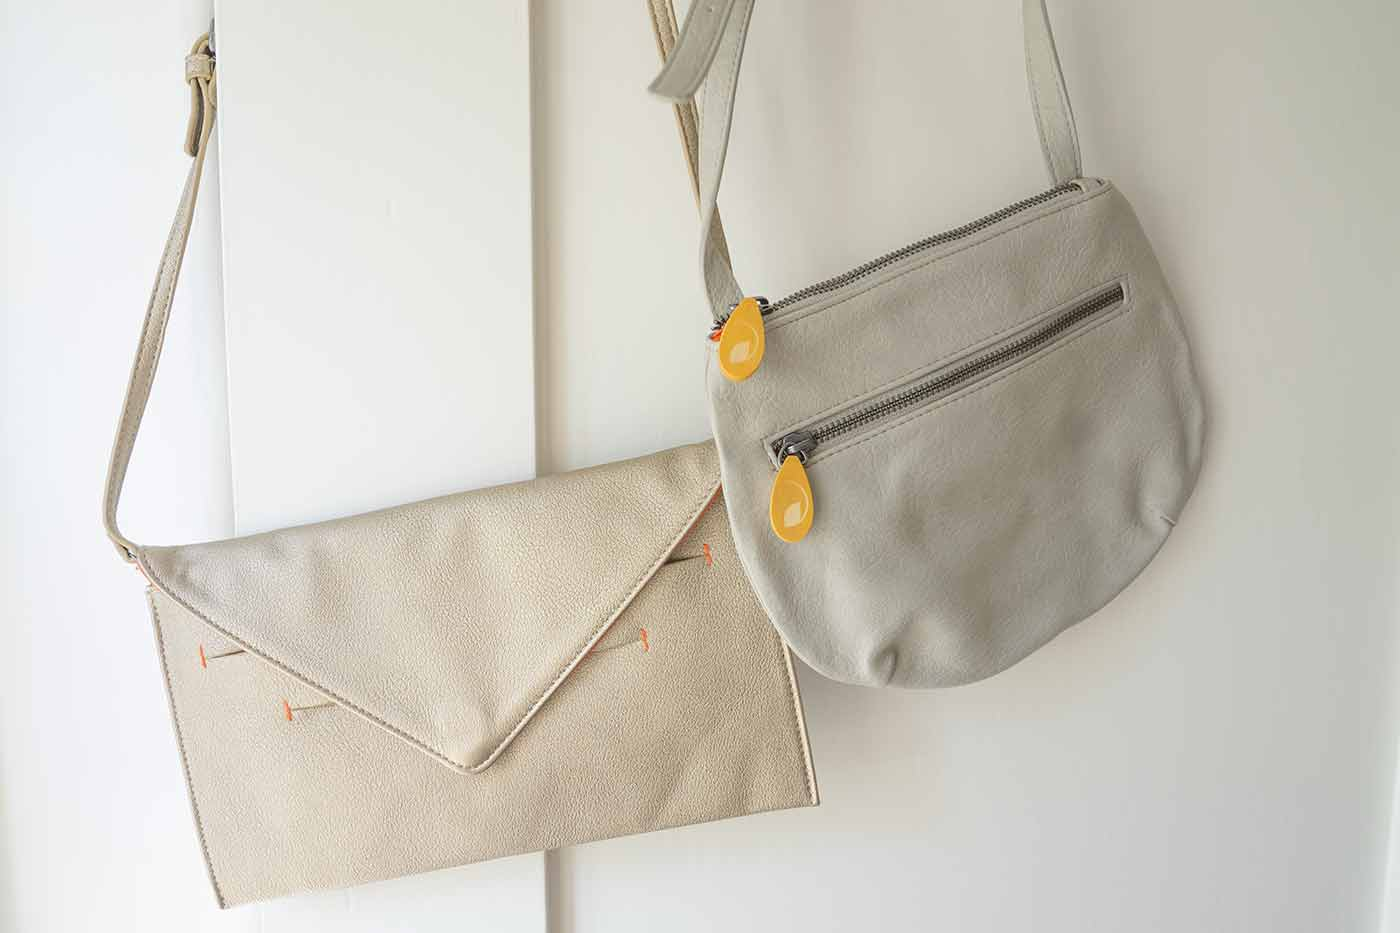 vegan cross body bags in gold and light grey from Canopy Verde